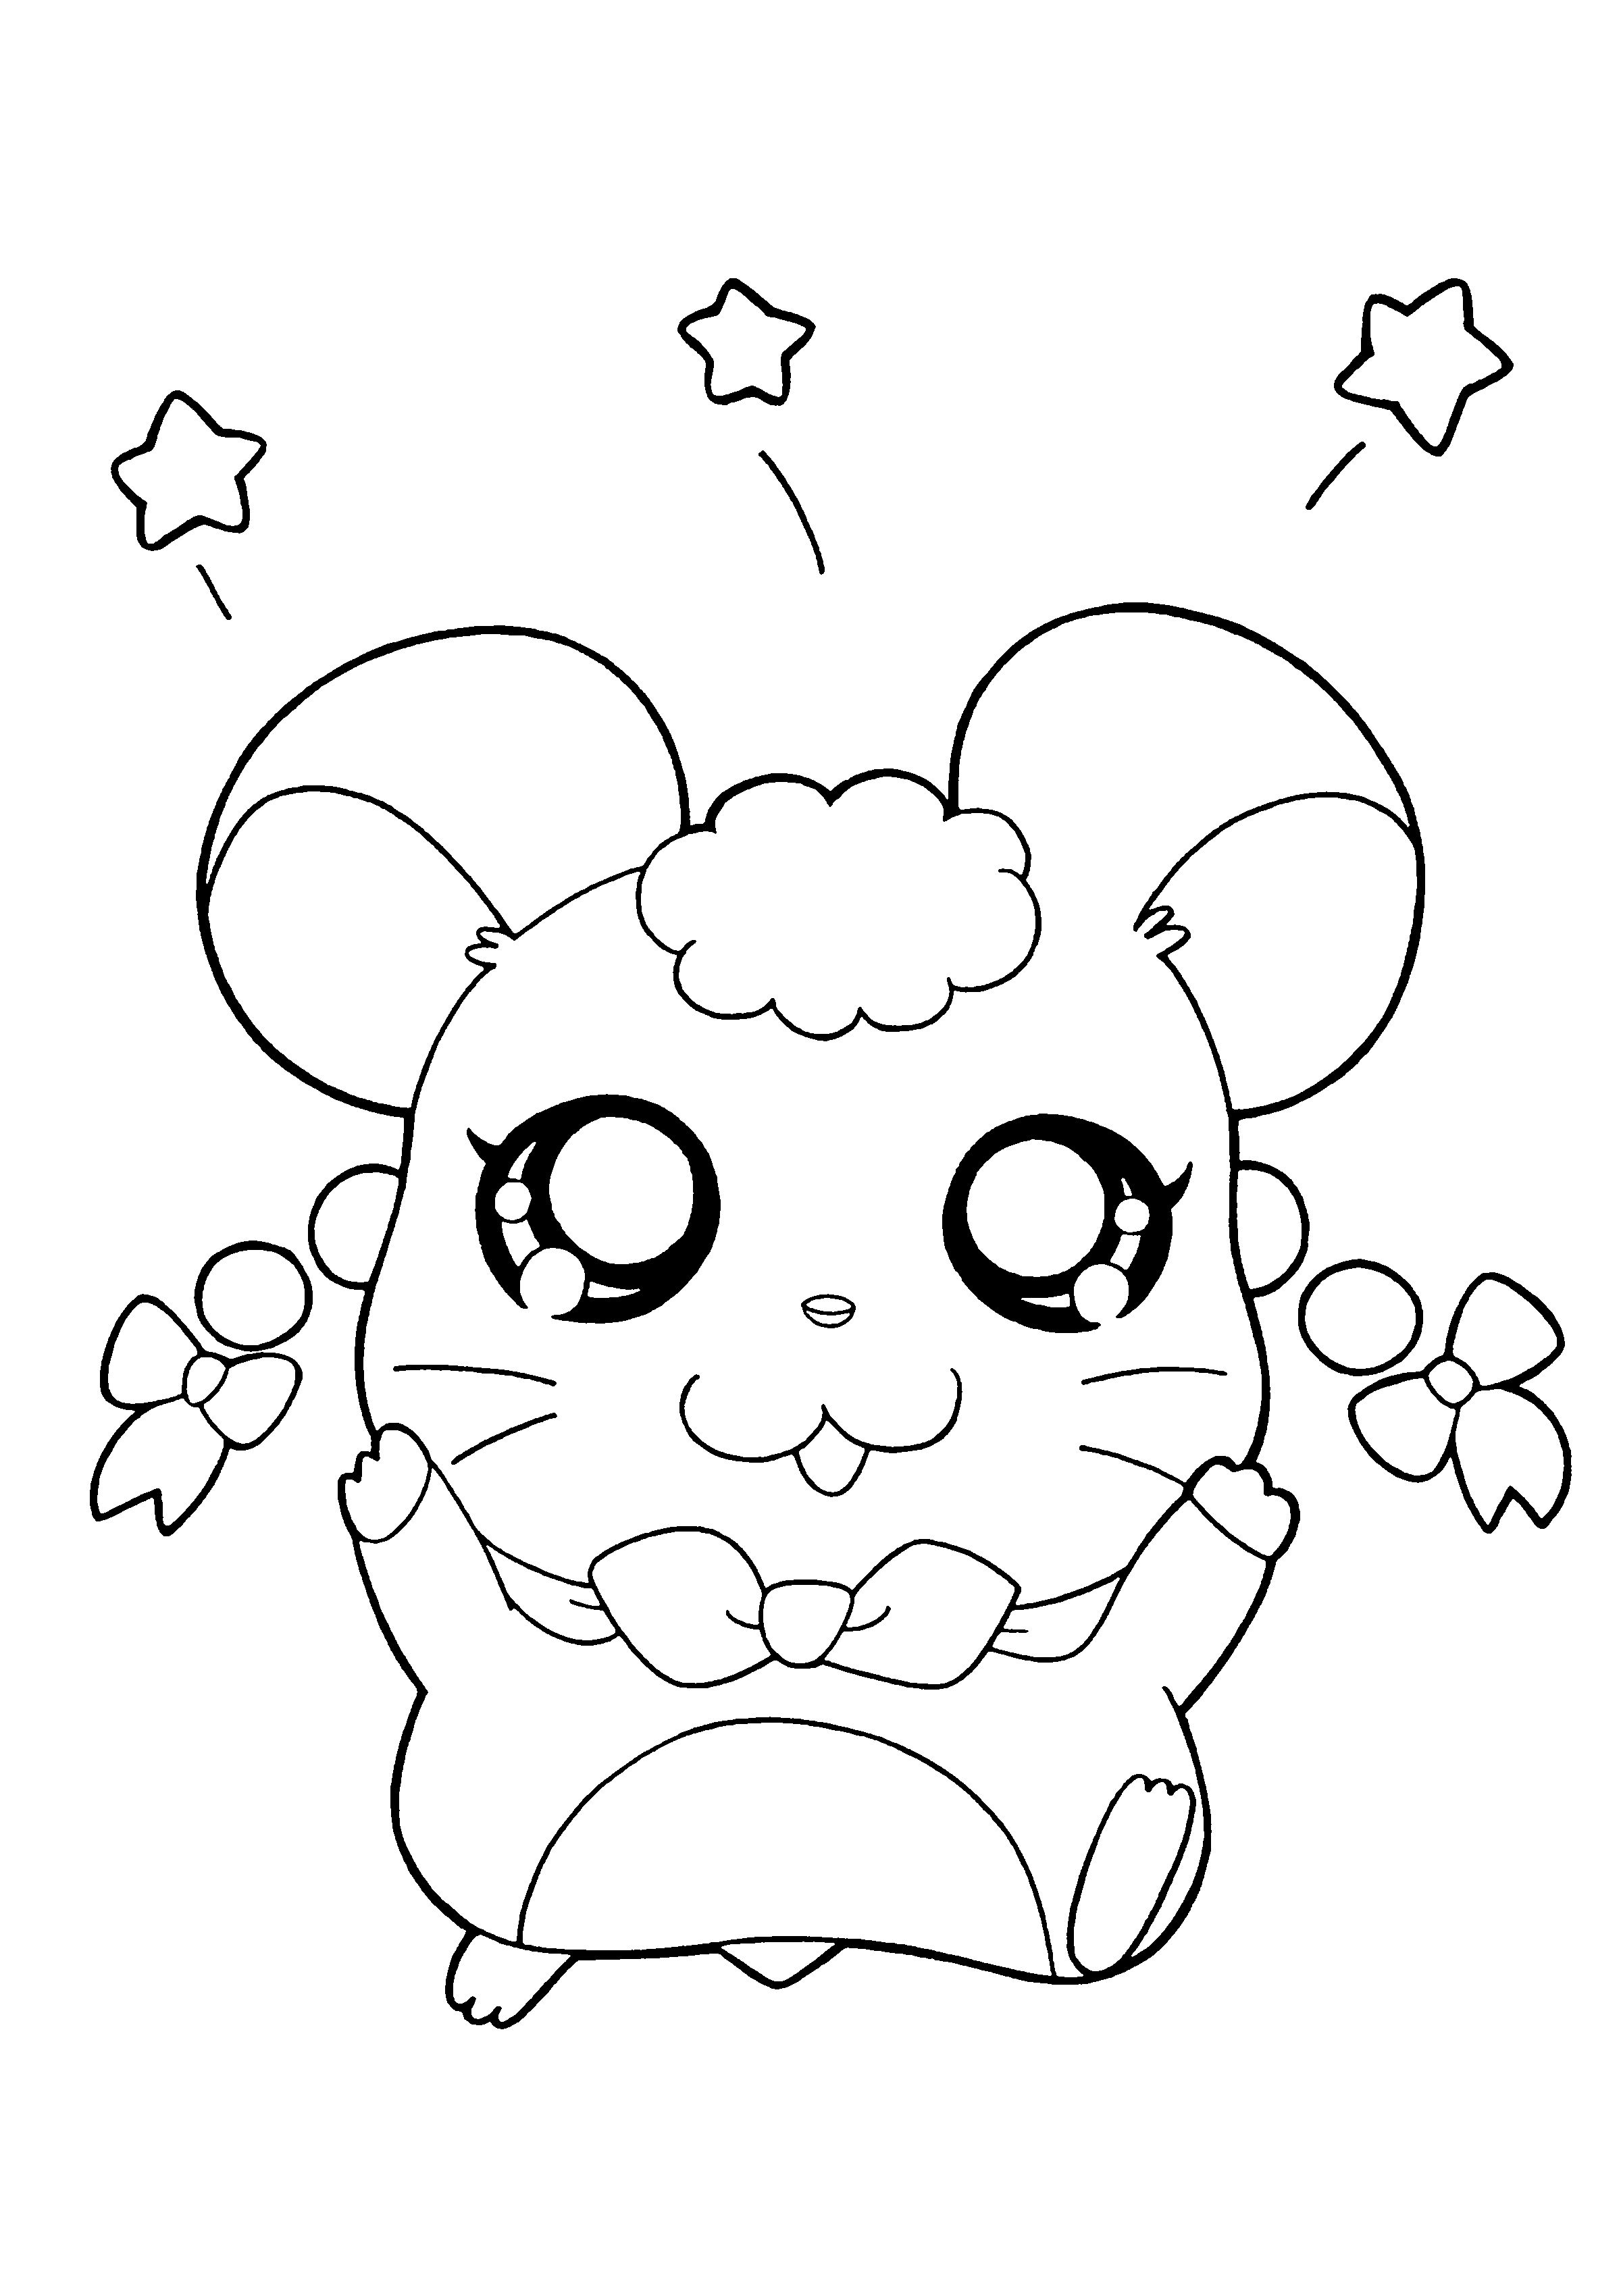 25 Coloring Pages Anime Characters | Coloring Pages | Pinterest ...